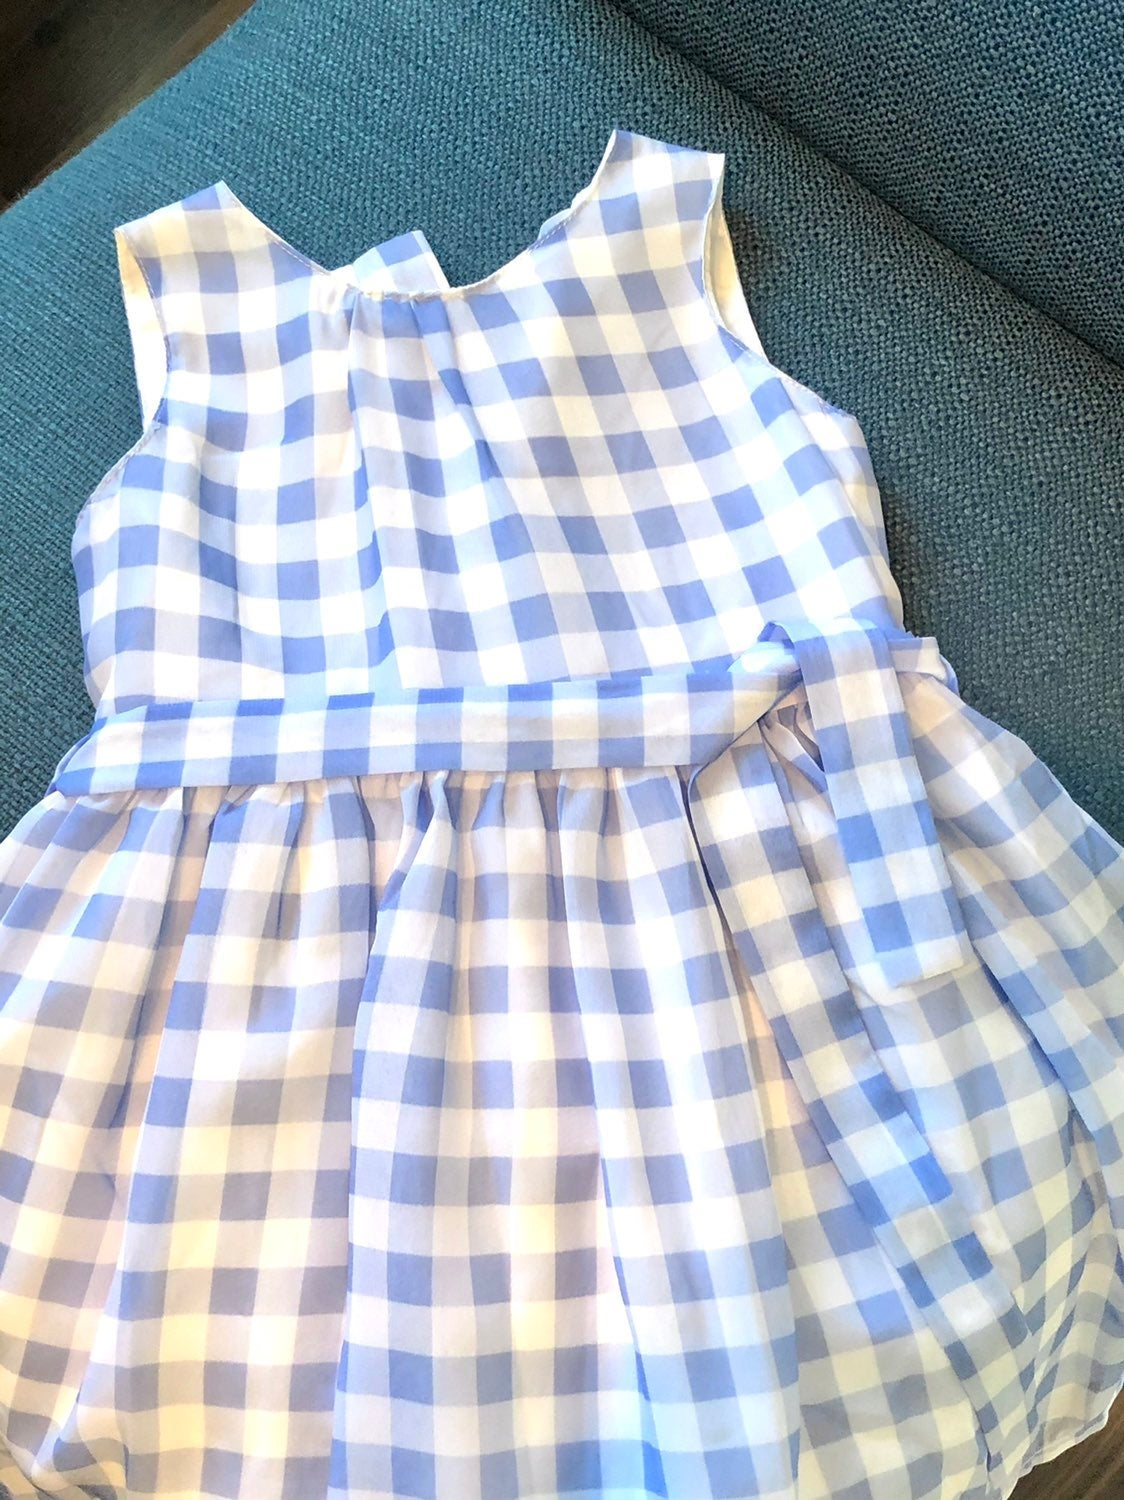 Carters blue and white baby dress 18 mth